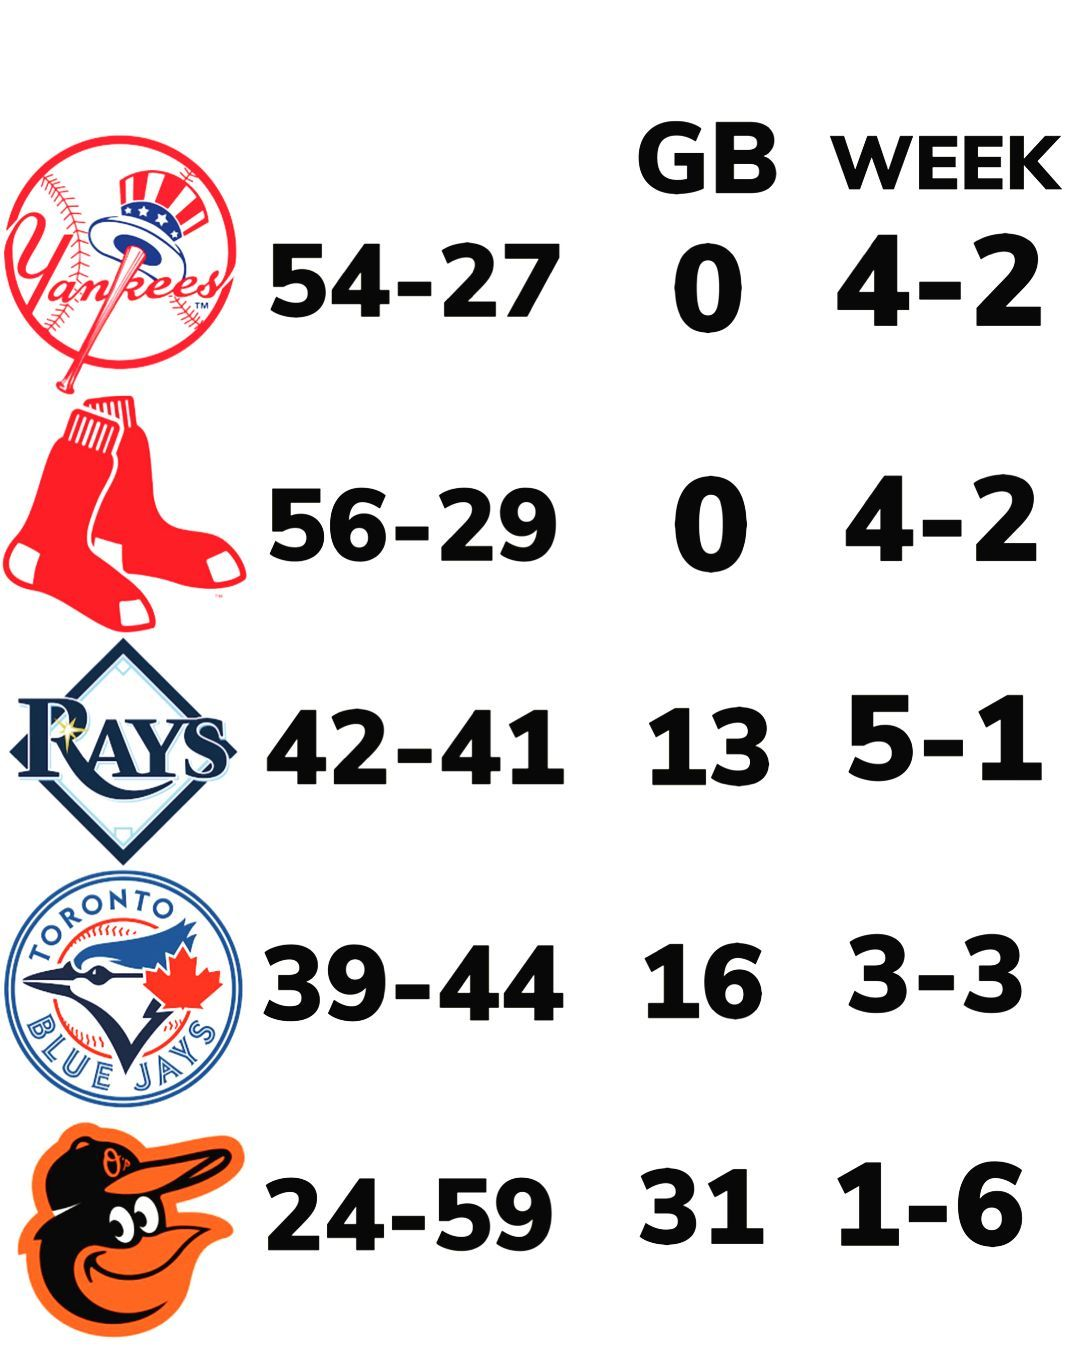 Entering Today Here Are The Standings Mlb Giants Padres Rockies Yankees Redsox Rays Bluejays Orioles Twins Baseball Scoreboard Baseball Mlb Standings